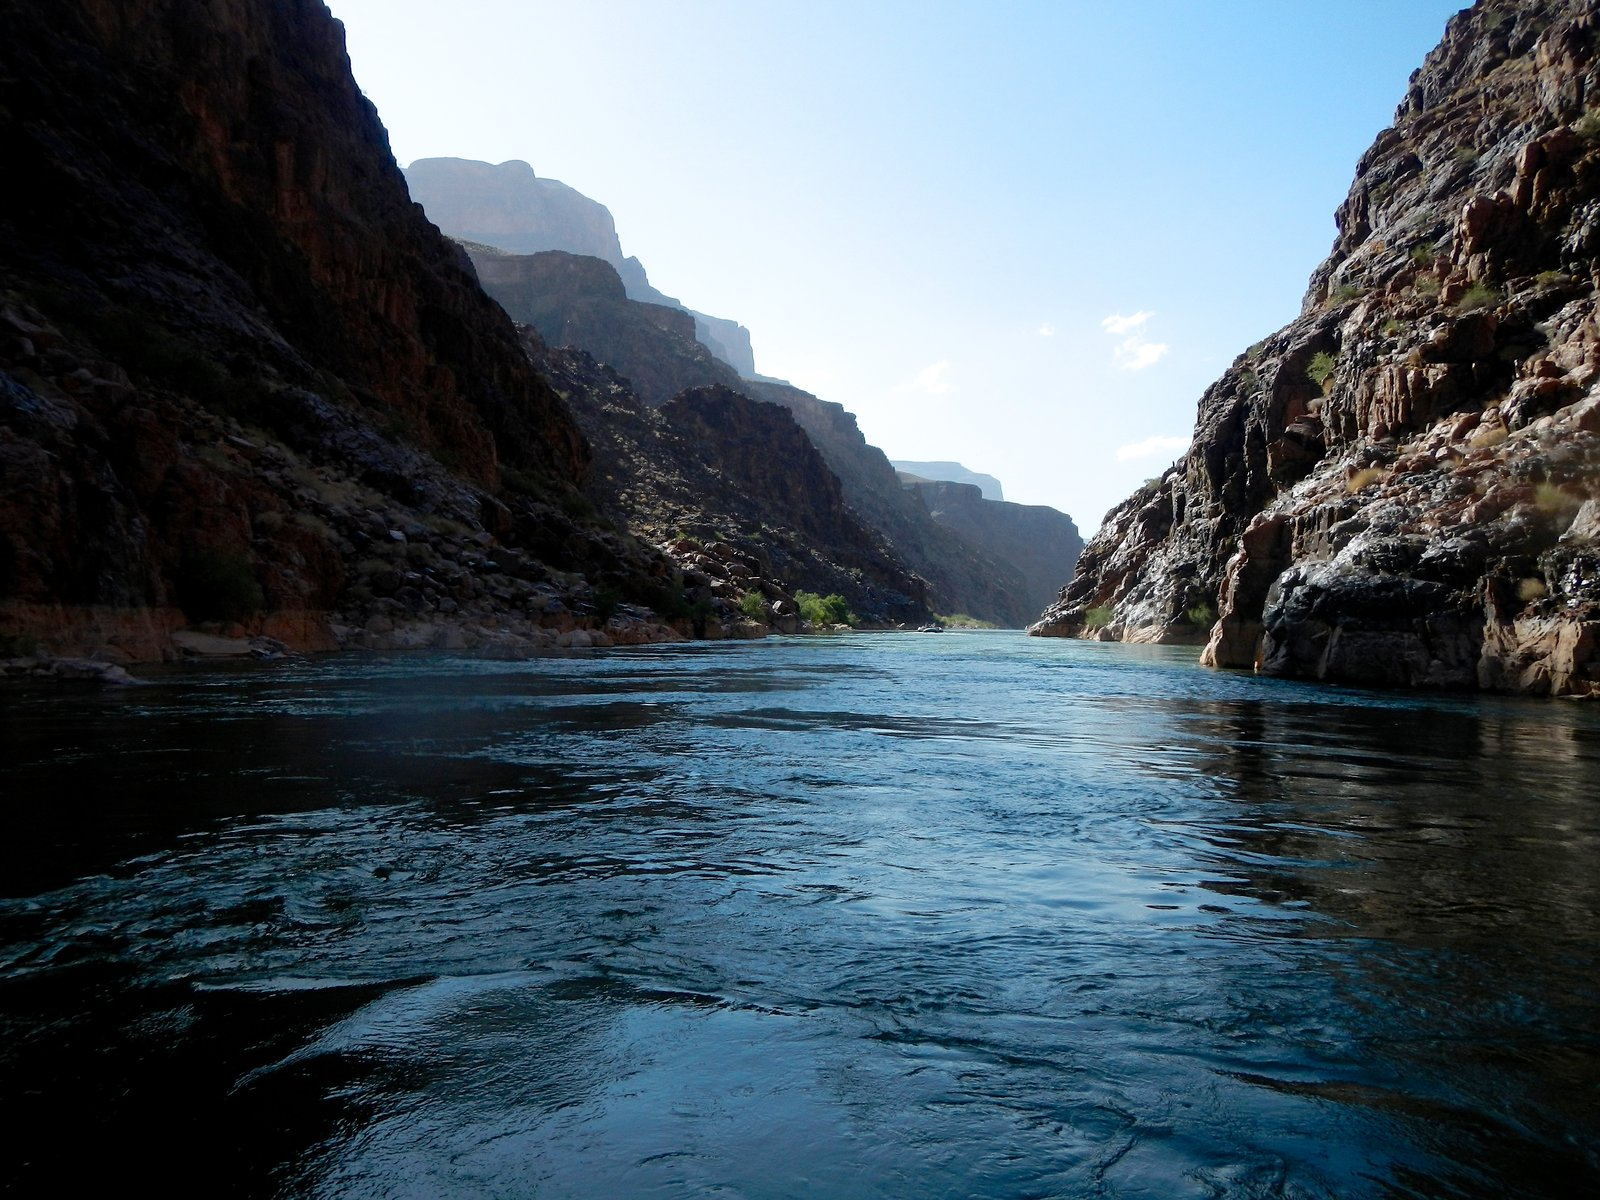 Grand Canyon, Colorado River #adventures #camping #hiking #camp #river  Grand Canyon Expedition